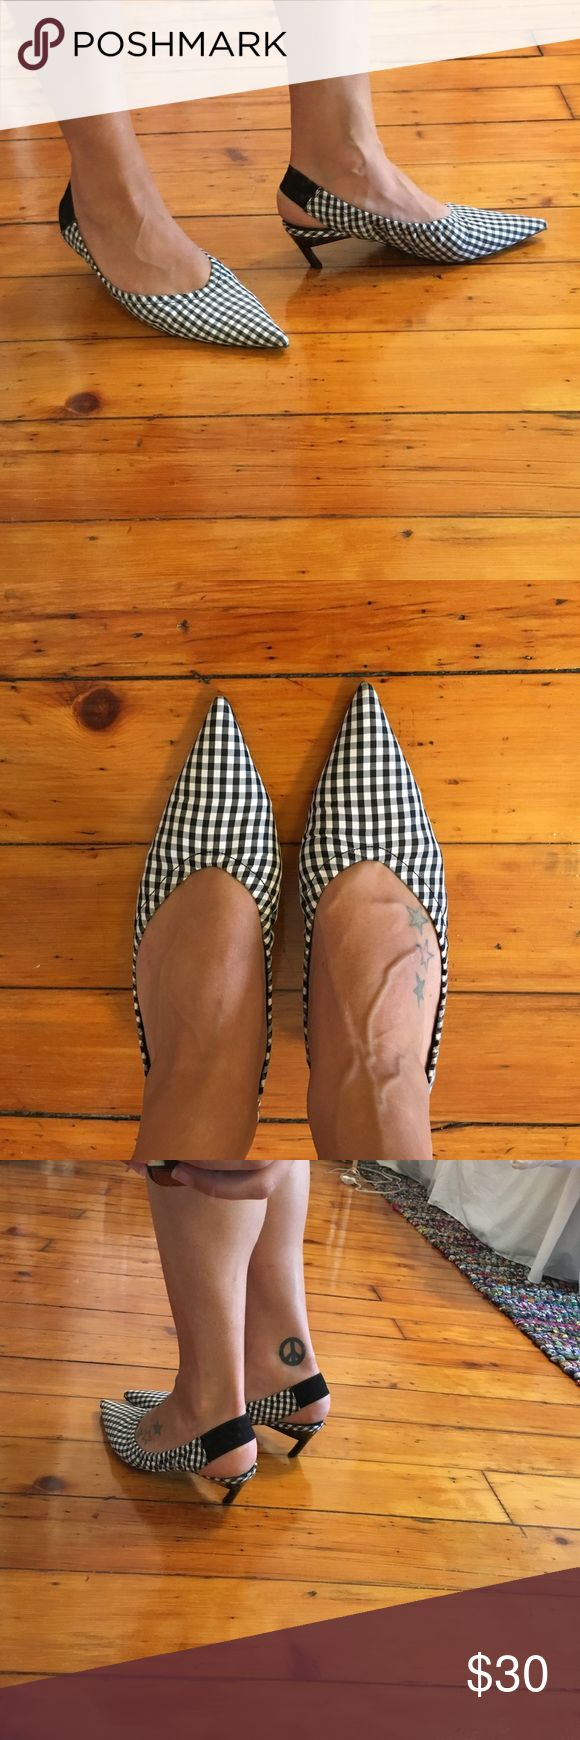 Zara's Most Popular shoe of this season! Worn twice. These gingham kitten heels shoes were sold out within seconds online! Elastic back strap with the slanted kitten heel look. They say size 40 on the shoe but I buy a size 9 which is a 40 on their site. Zara Shoes Heels